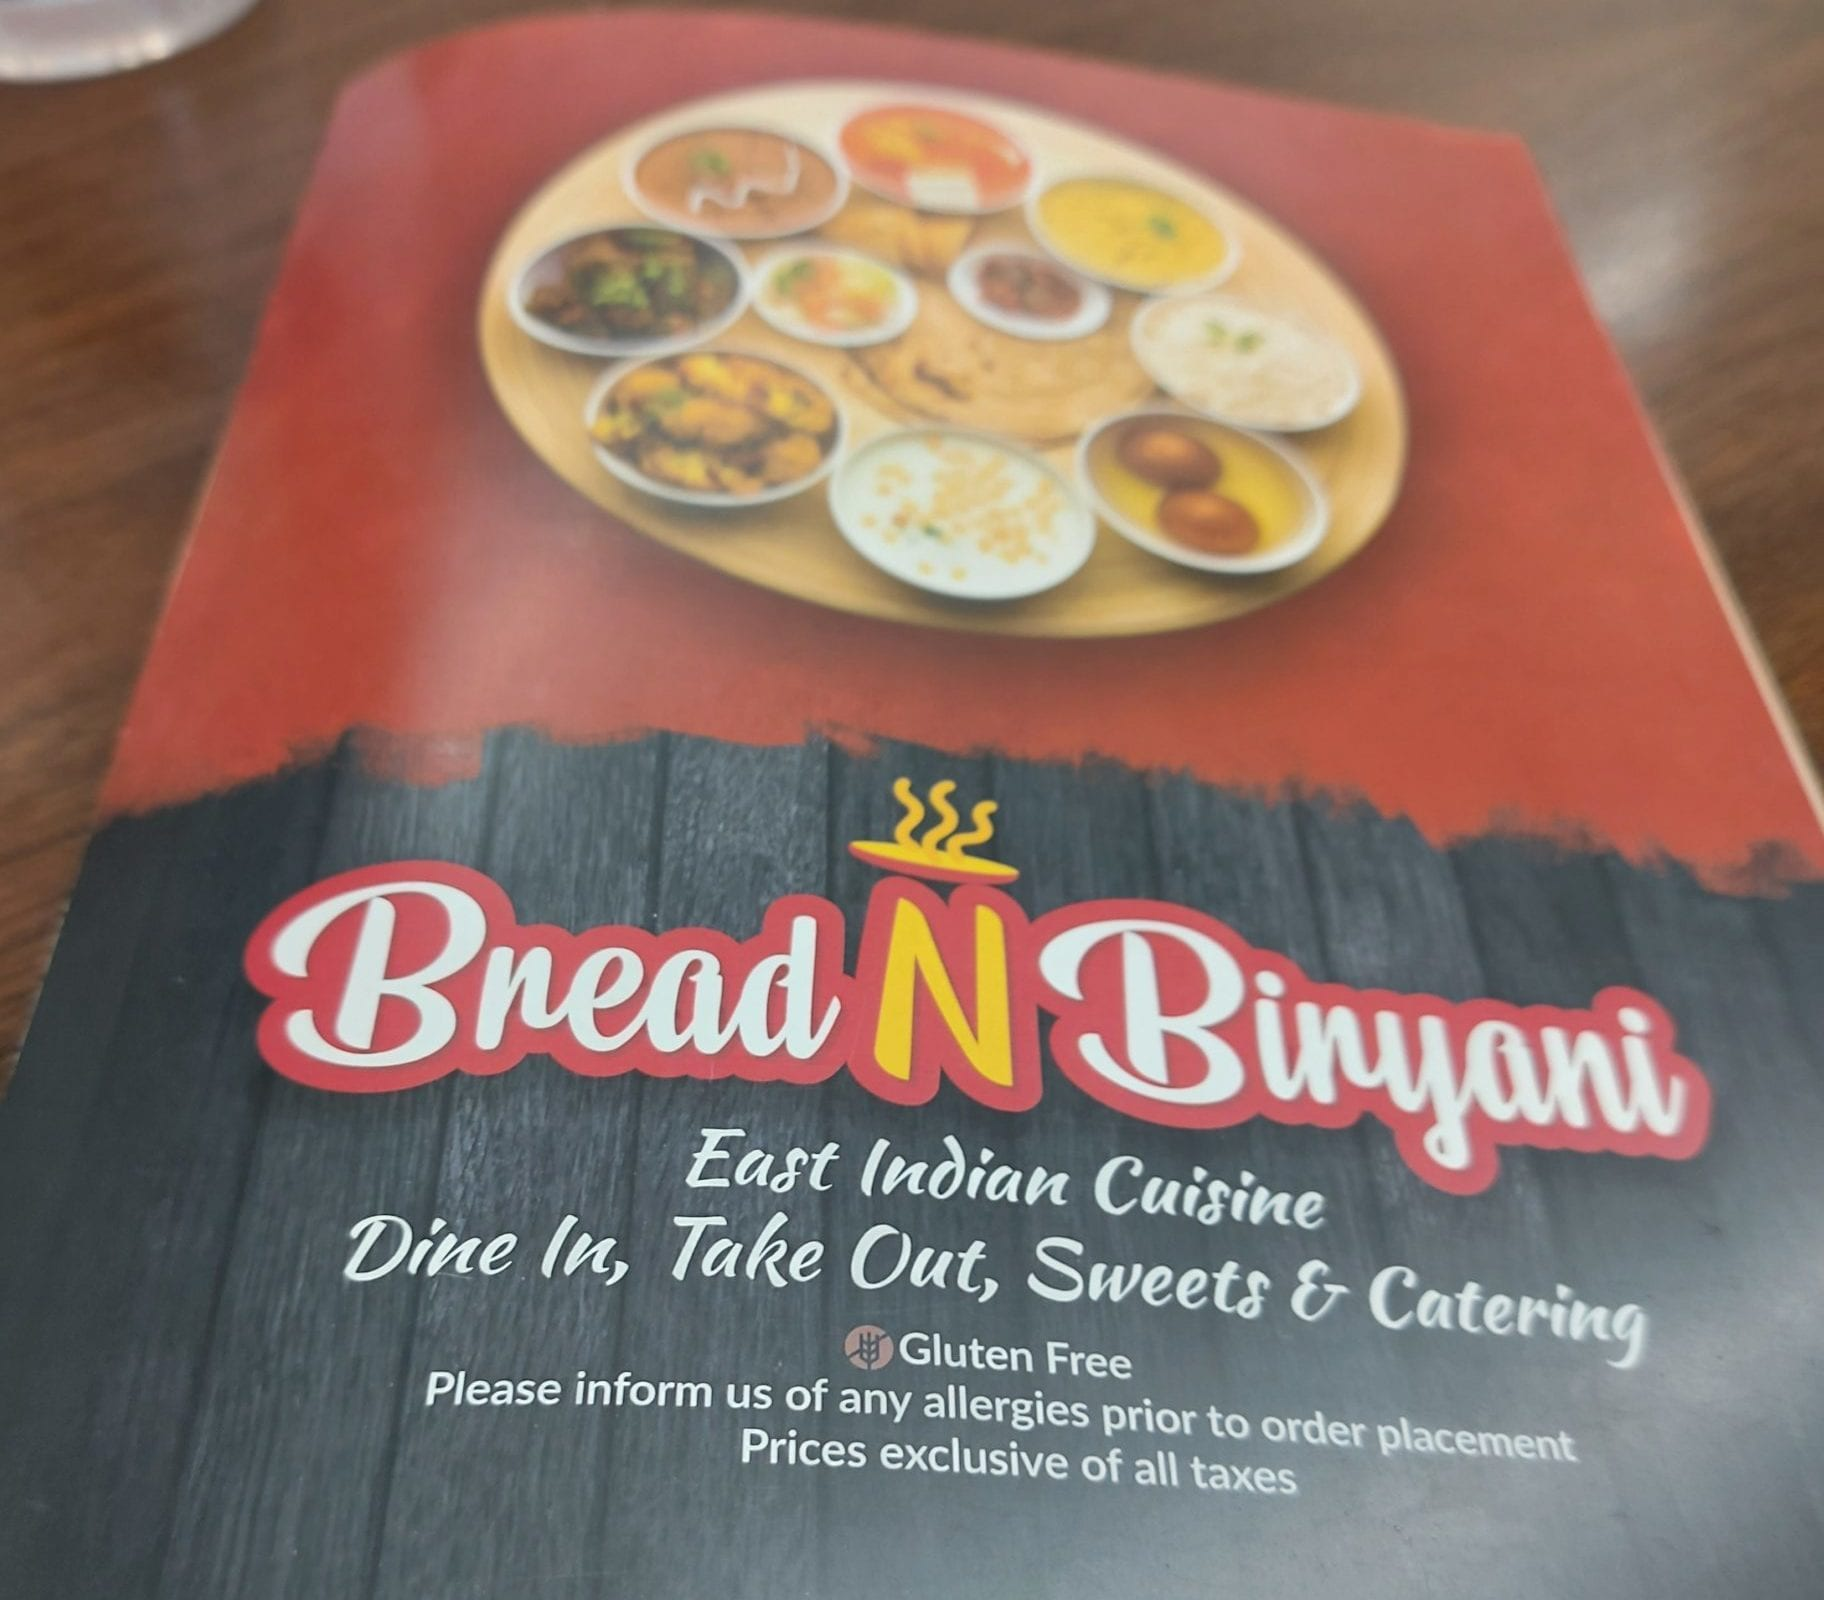 Bread N Biryani menu